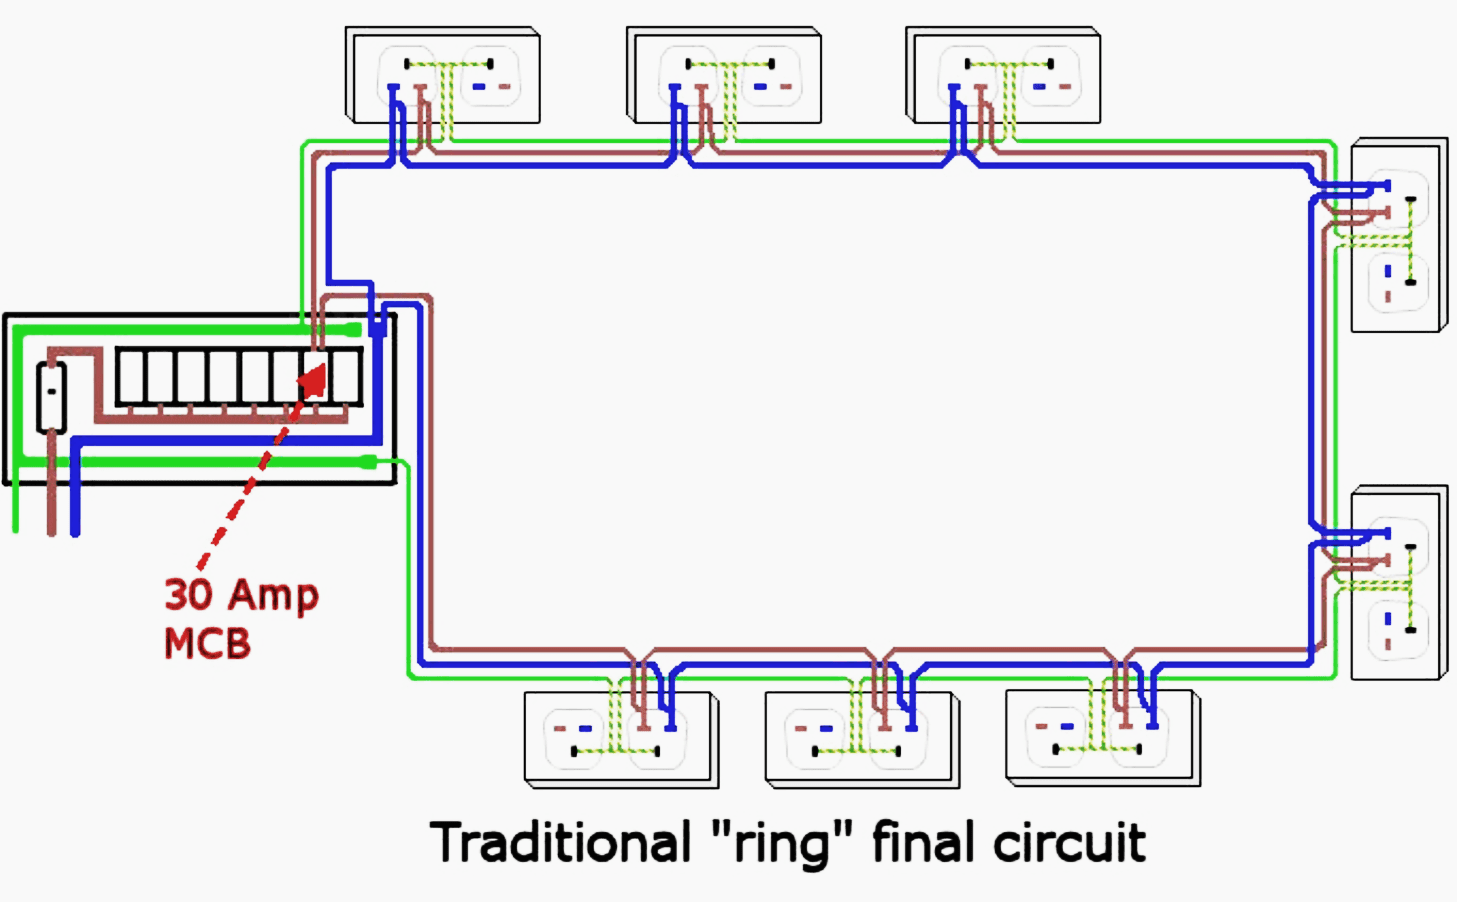 hight resolution of detailed diagram of a traditional uk final ring circuit